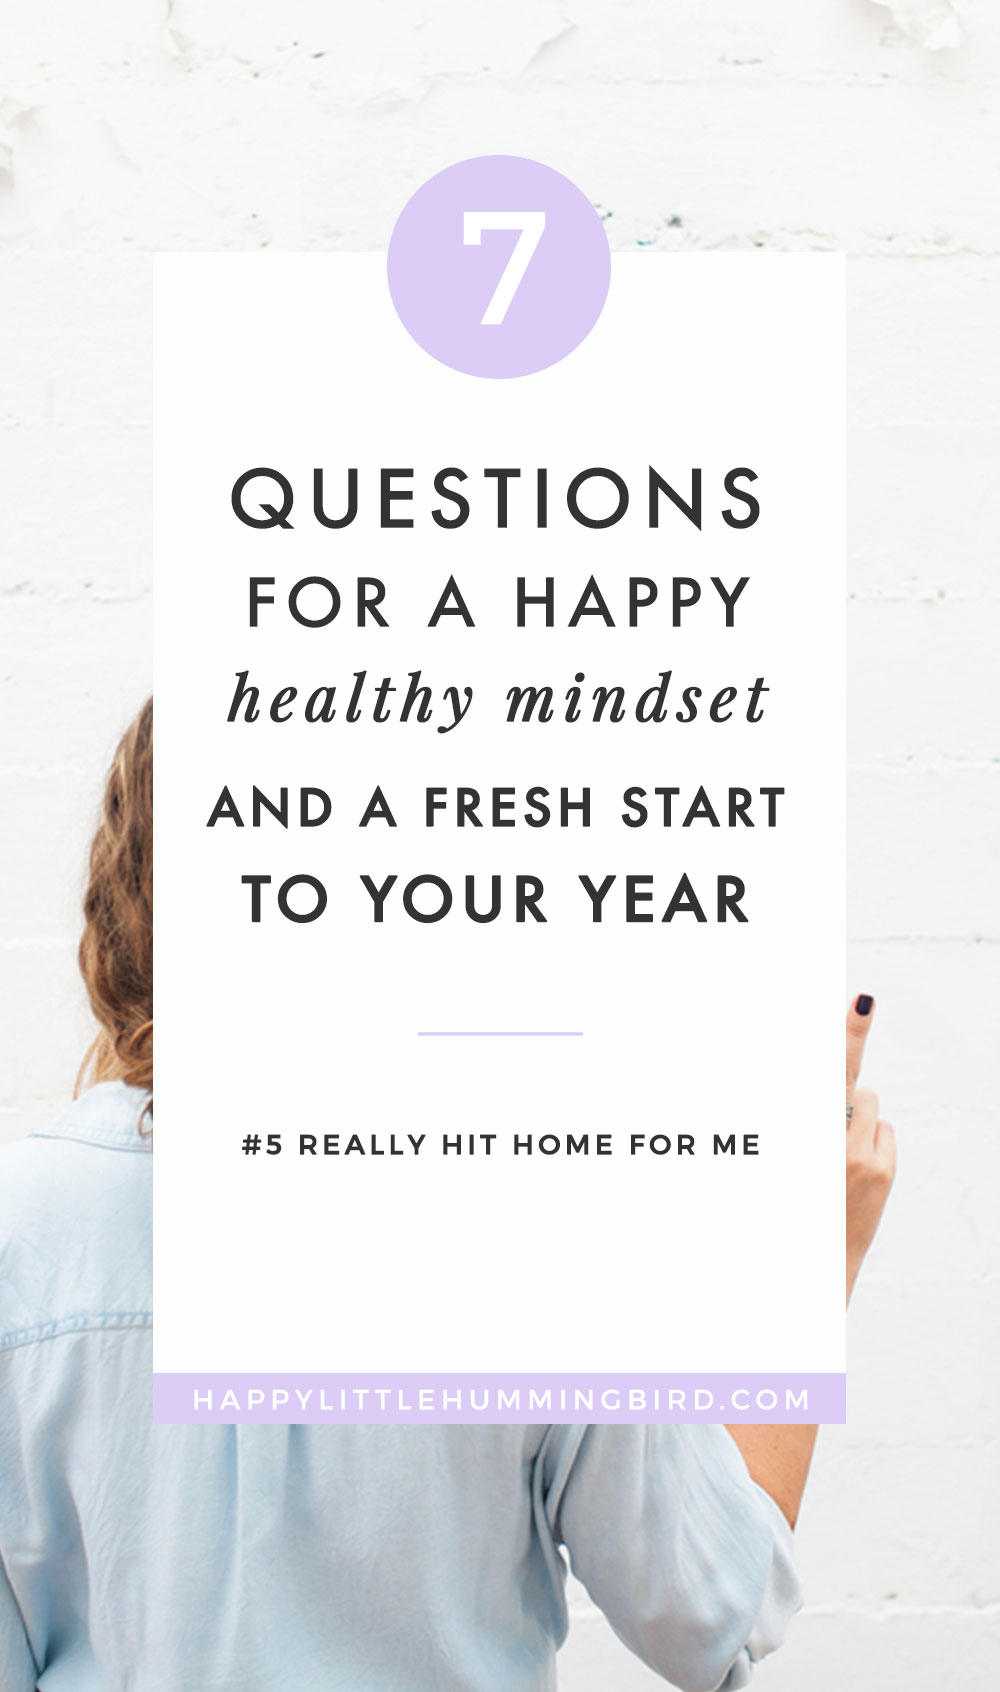 Don't start the new year with a heavy emotional weight from carrying last year's baggage! Start the year fresh with a healthy positive mindset so you can focus on what's truly important and matters most to YOU!